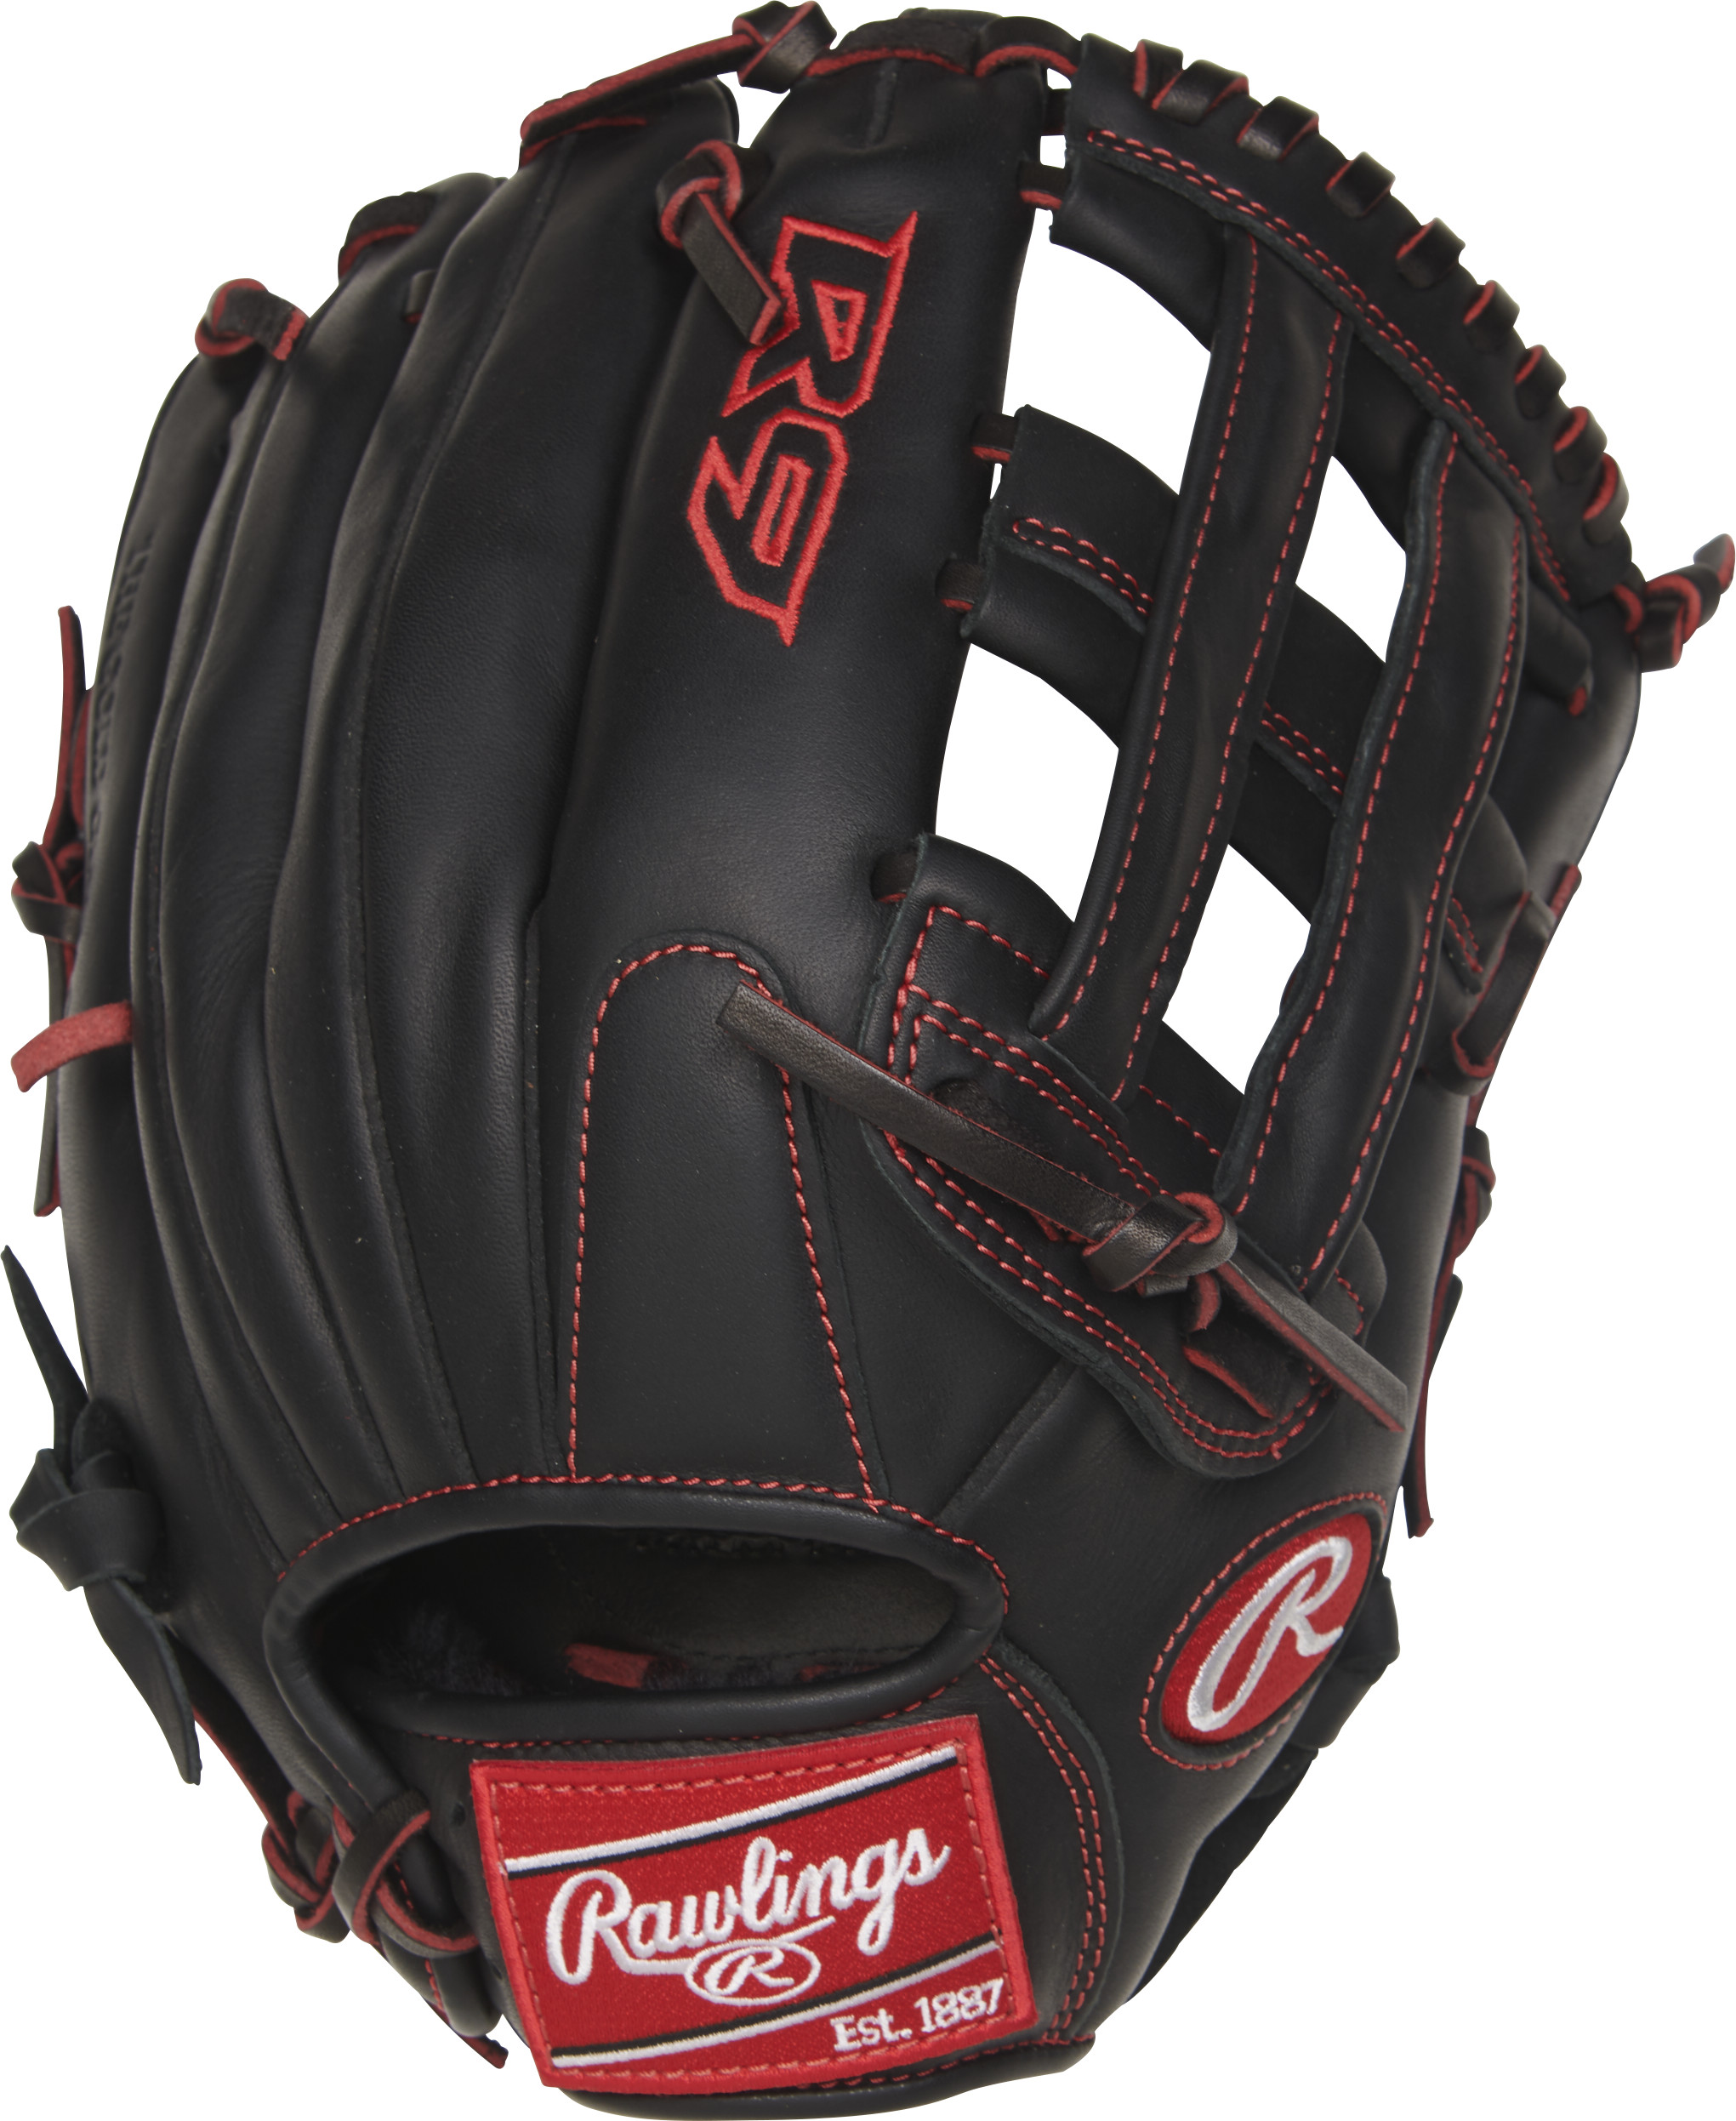 http://www.bestbatdeals.com/images/gloves/rawlings/R9YPT6-6B-2.jpg